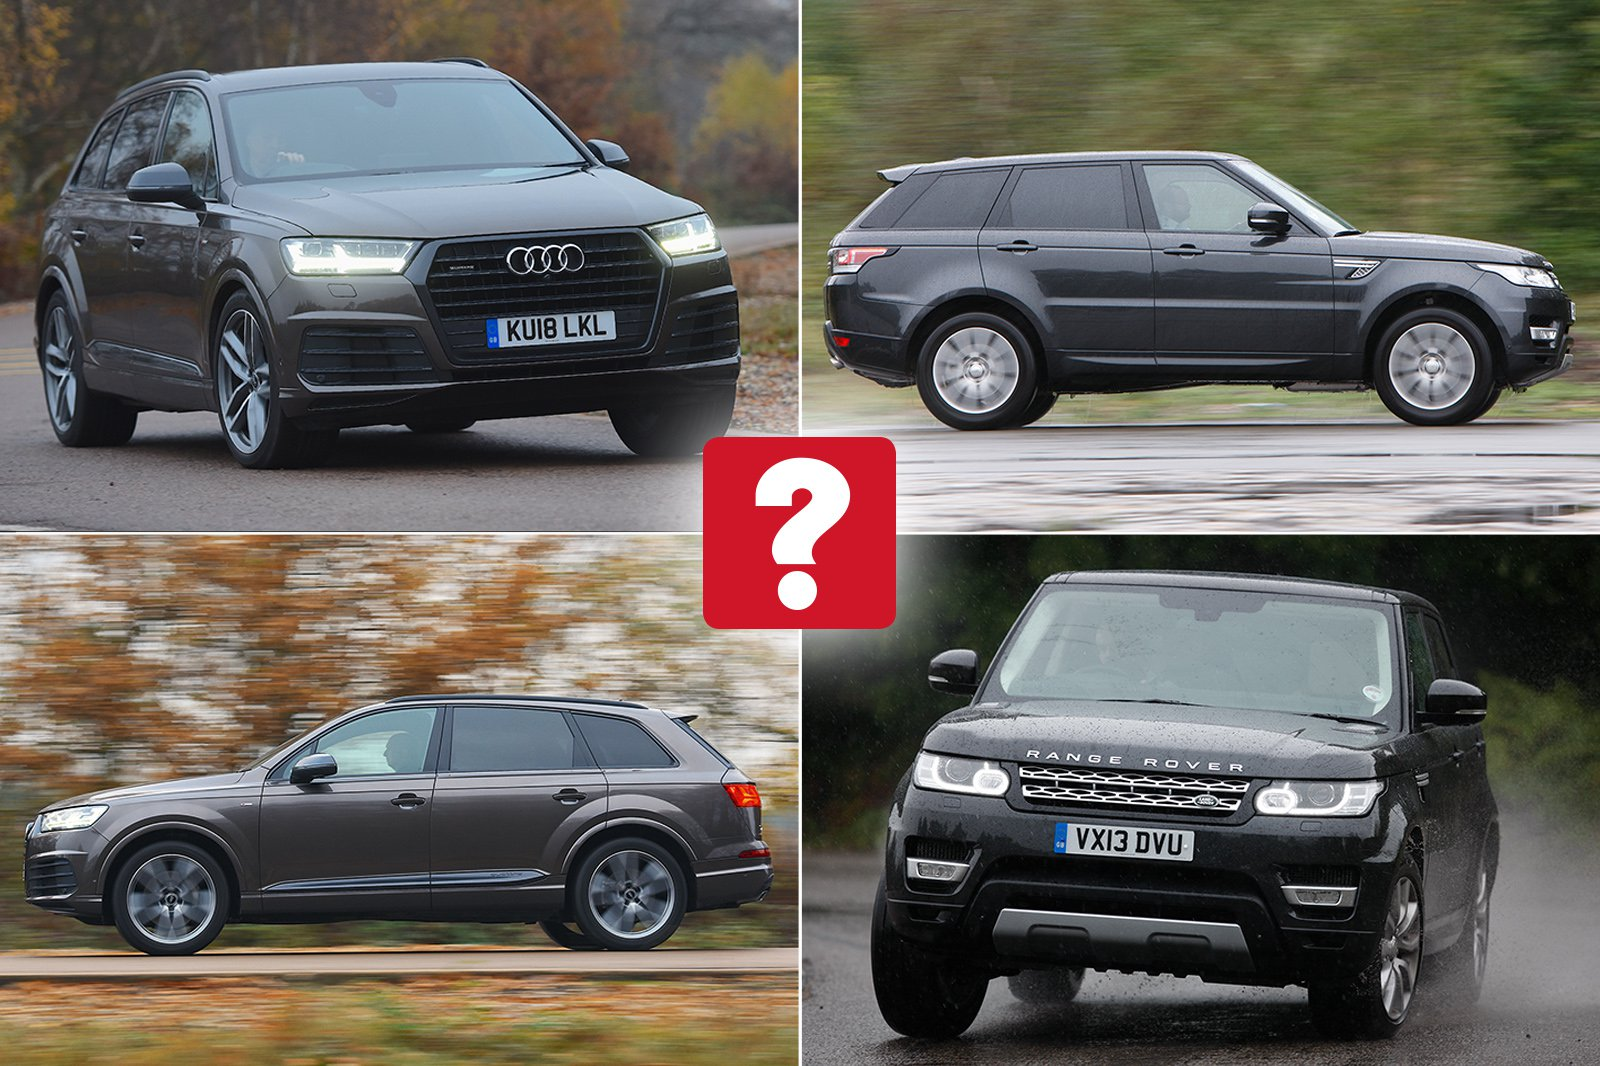 New Audi Q7 vs used Range Rover Sport: which is best?